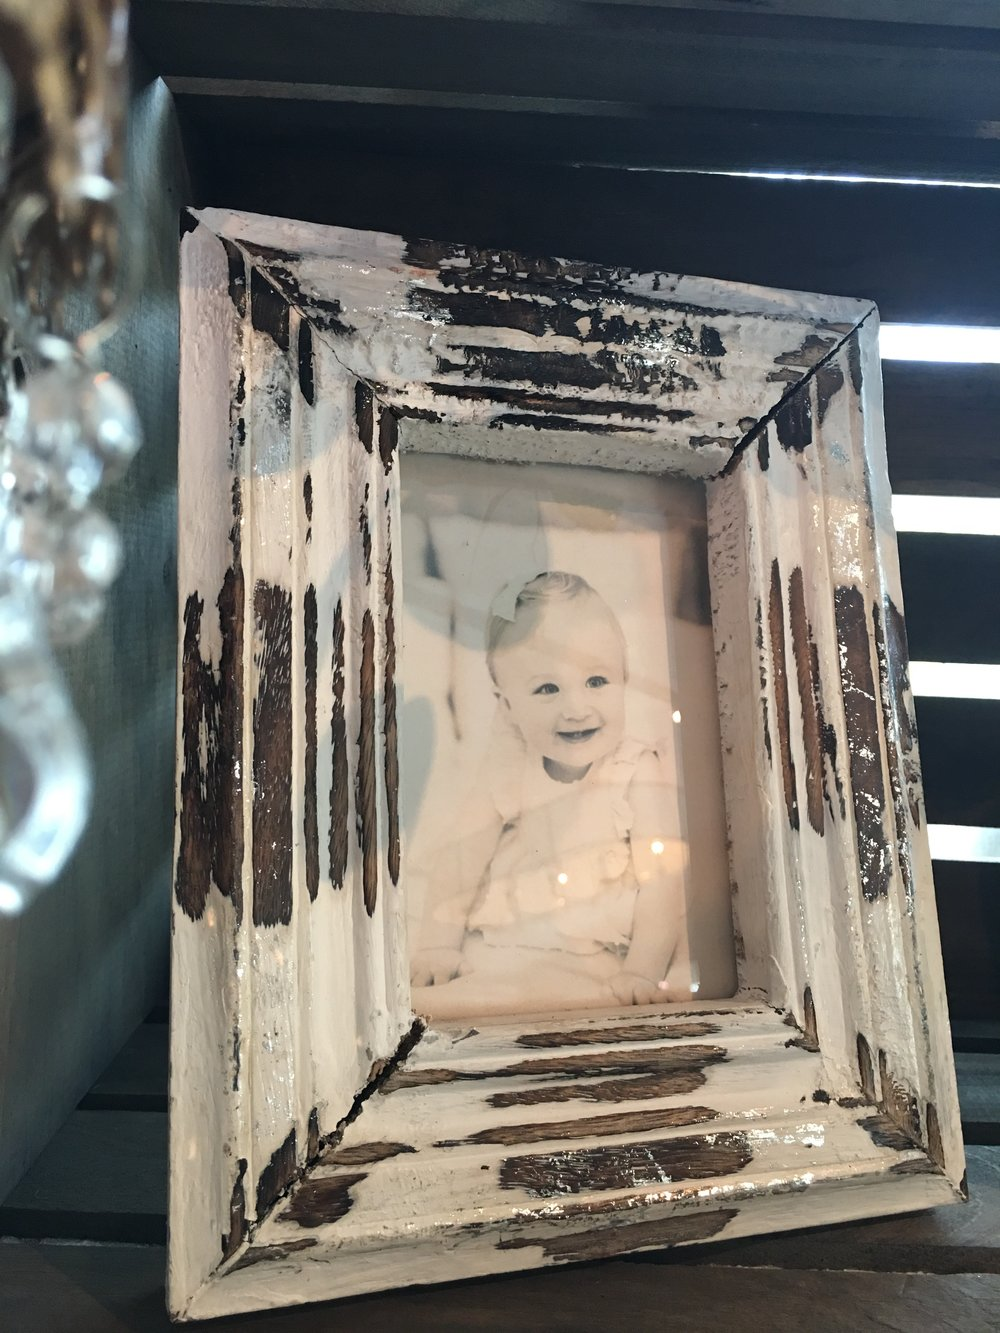 beautiful-and-blessed-events-hendricks-tavern-first-birthday-ava-rose-003